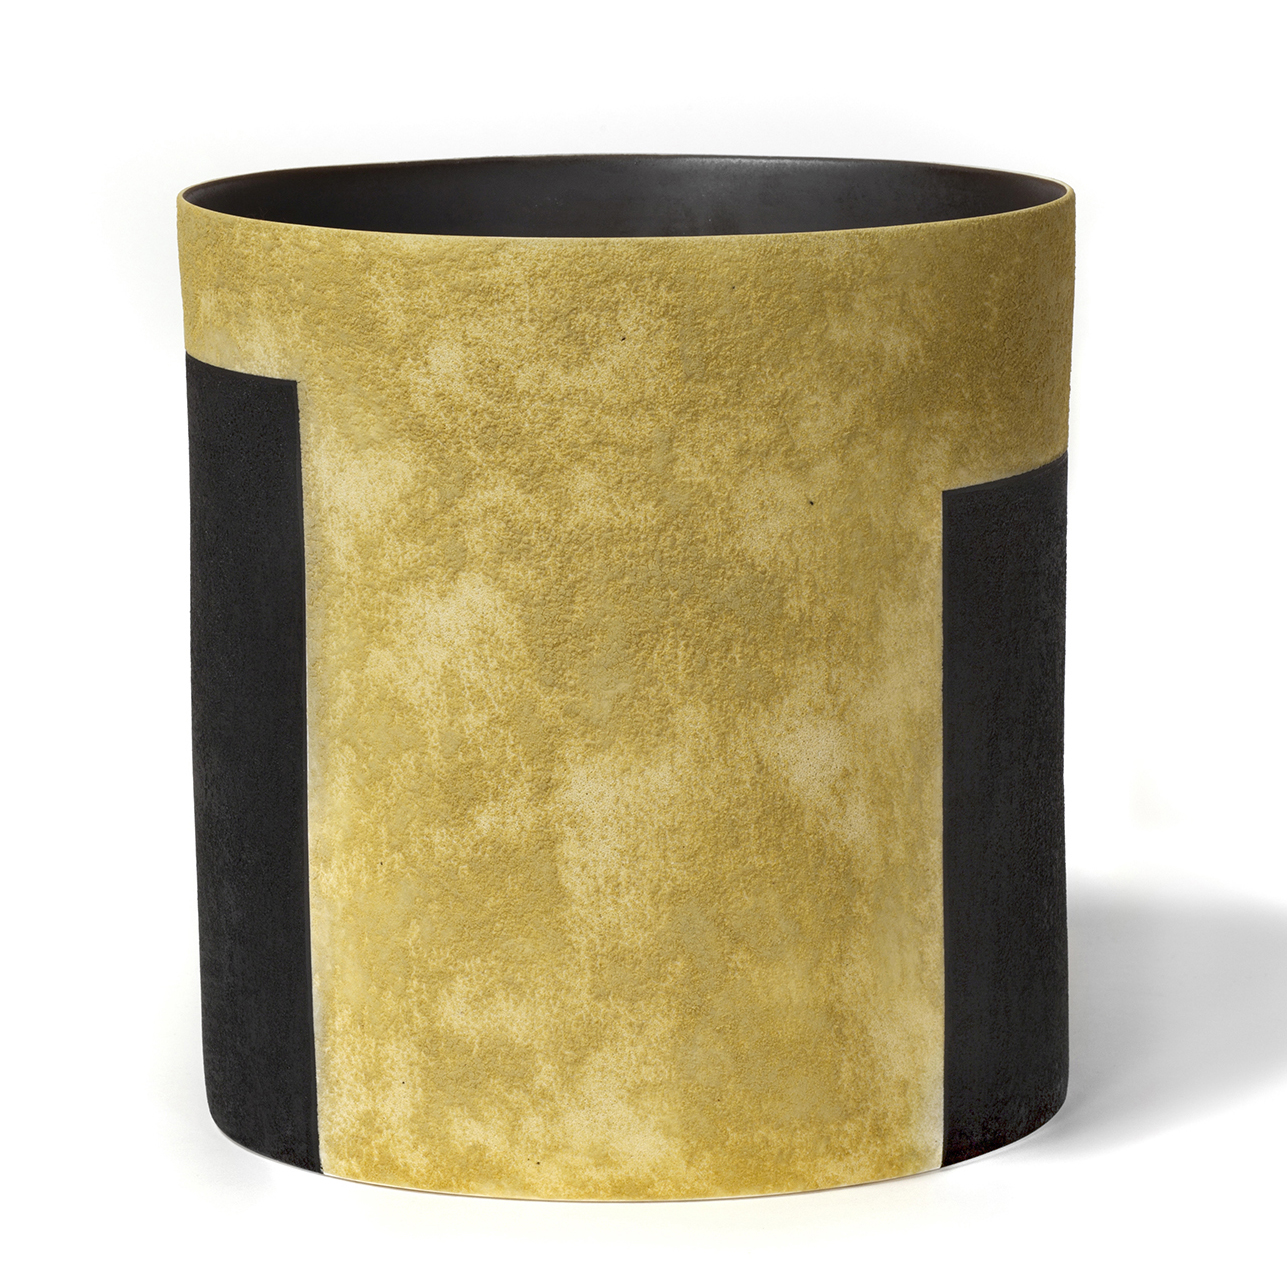 "Tall Ochre Bucket Vessel     11""x10""x11"""